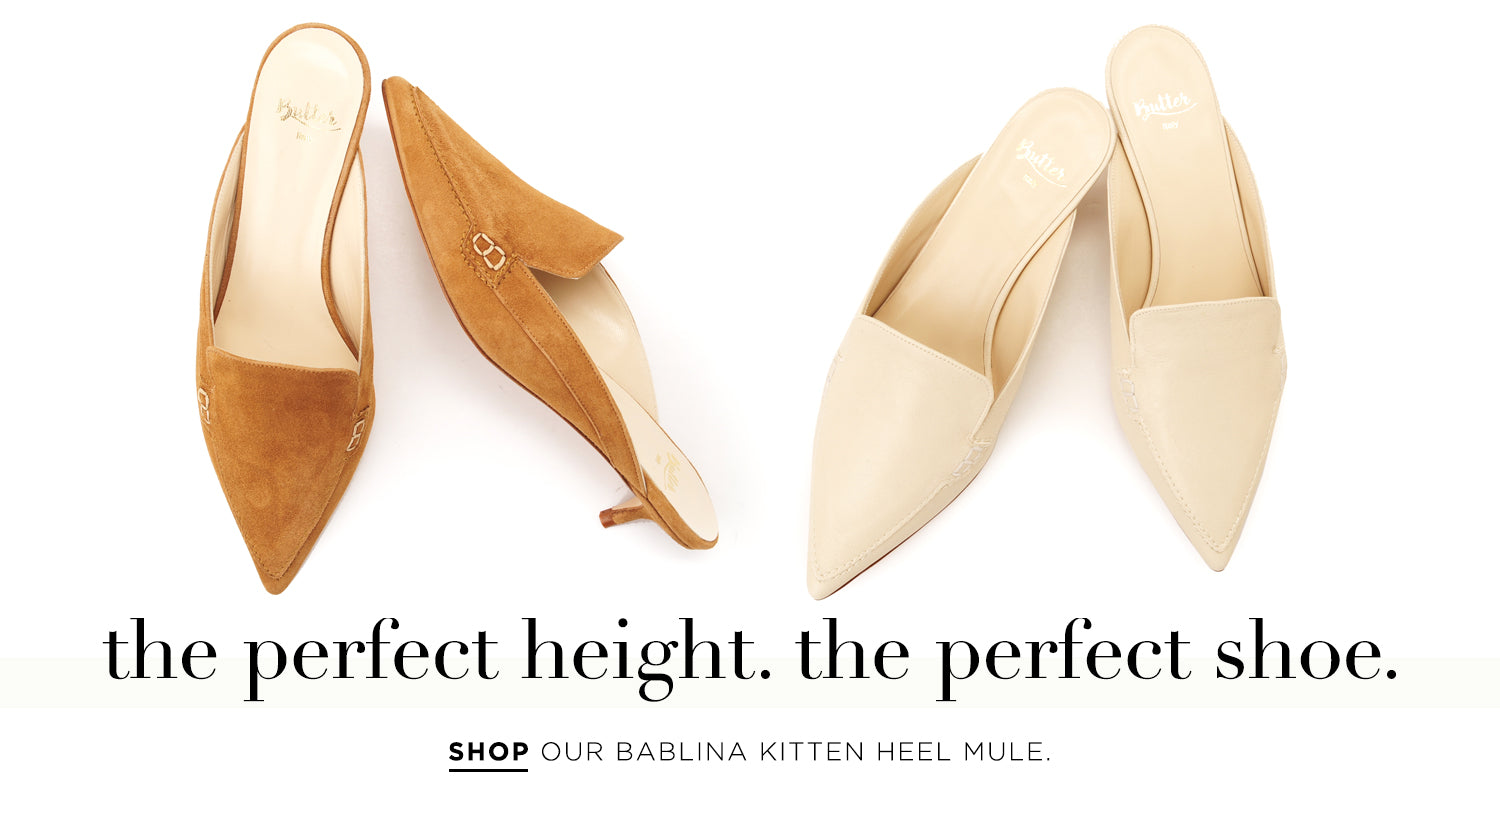 The perfect height. The perfect shoe. Shop our Bablina Kitten Heel Mule.